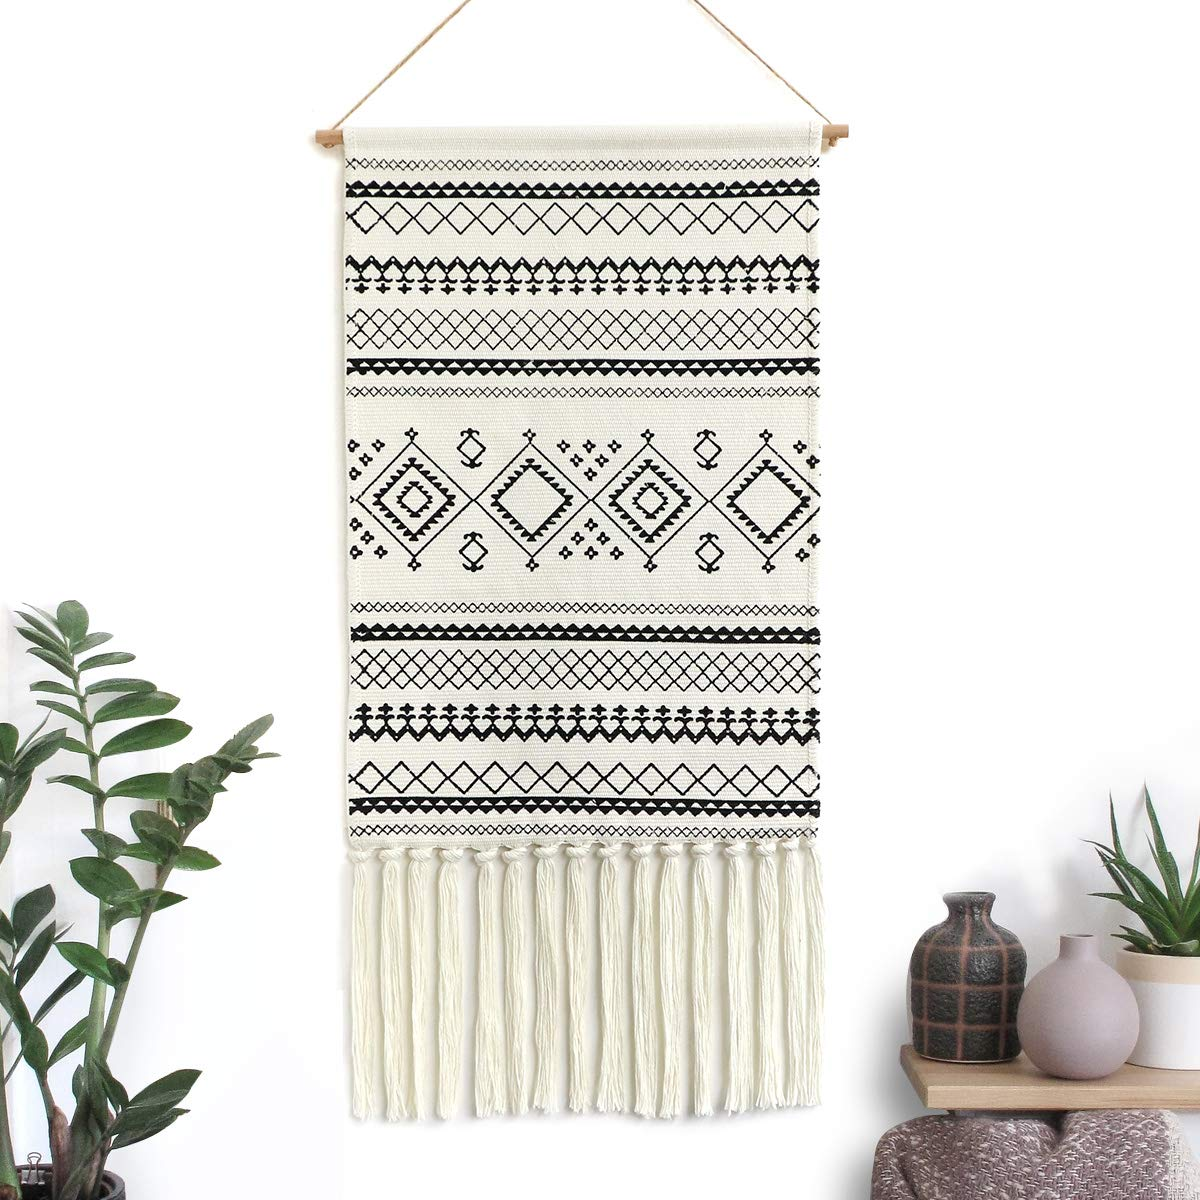 "Dremisland Macrame Woven Wall Hanging Tapestry- Boho Chic Bohemian Home Decor Geometric Art Decor Boho Backdrop - Beautiful Apartment Dorm Room Door Decoration, 17.7"" W x 32"" L (Black Geometric)"